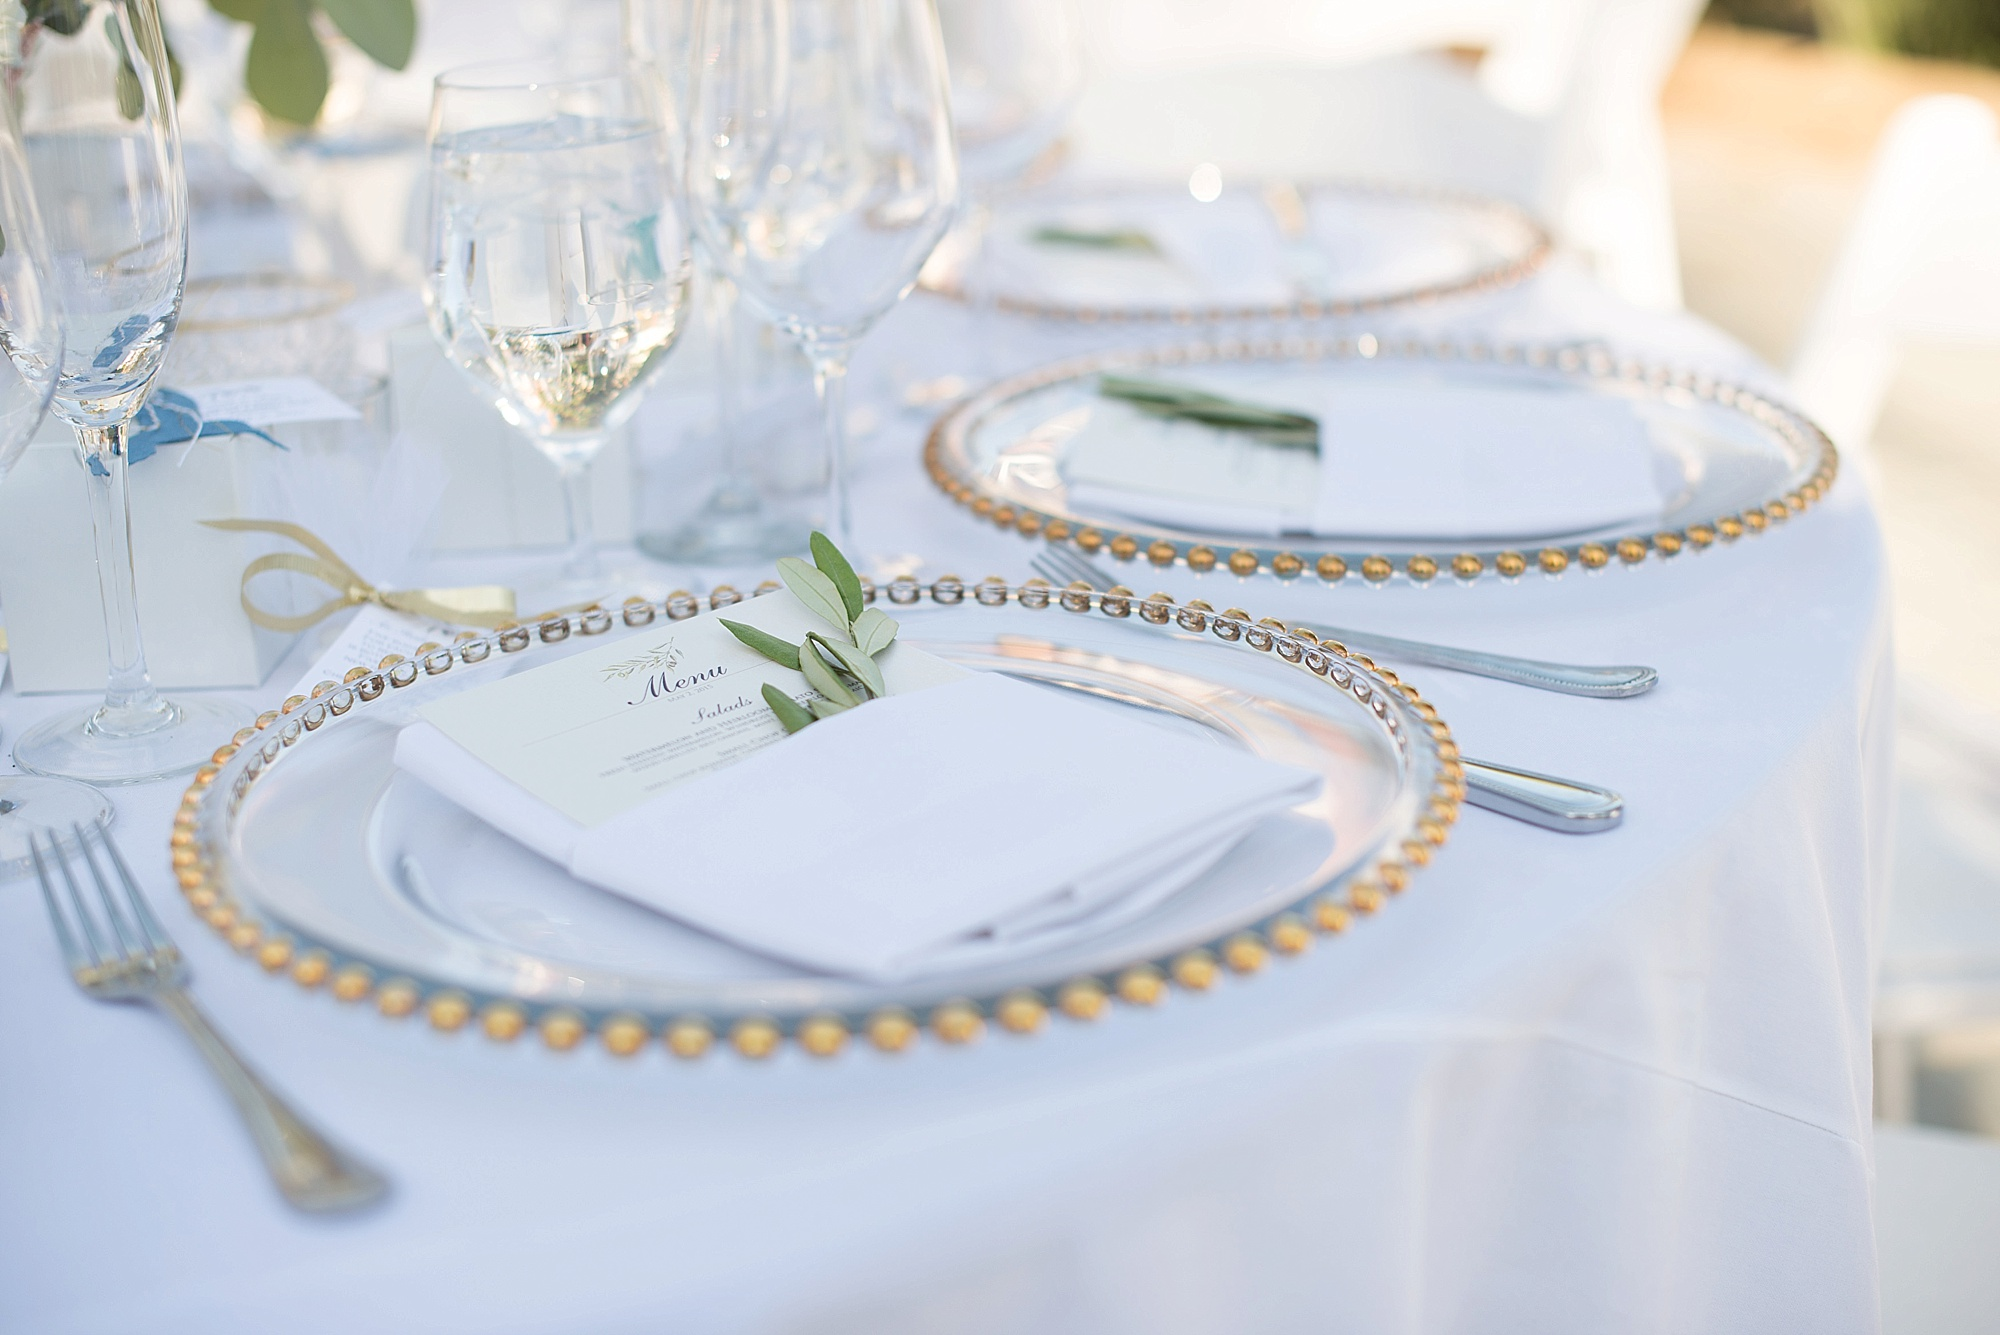 Wedding Rentals Santa Clarita